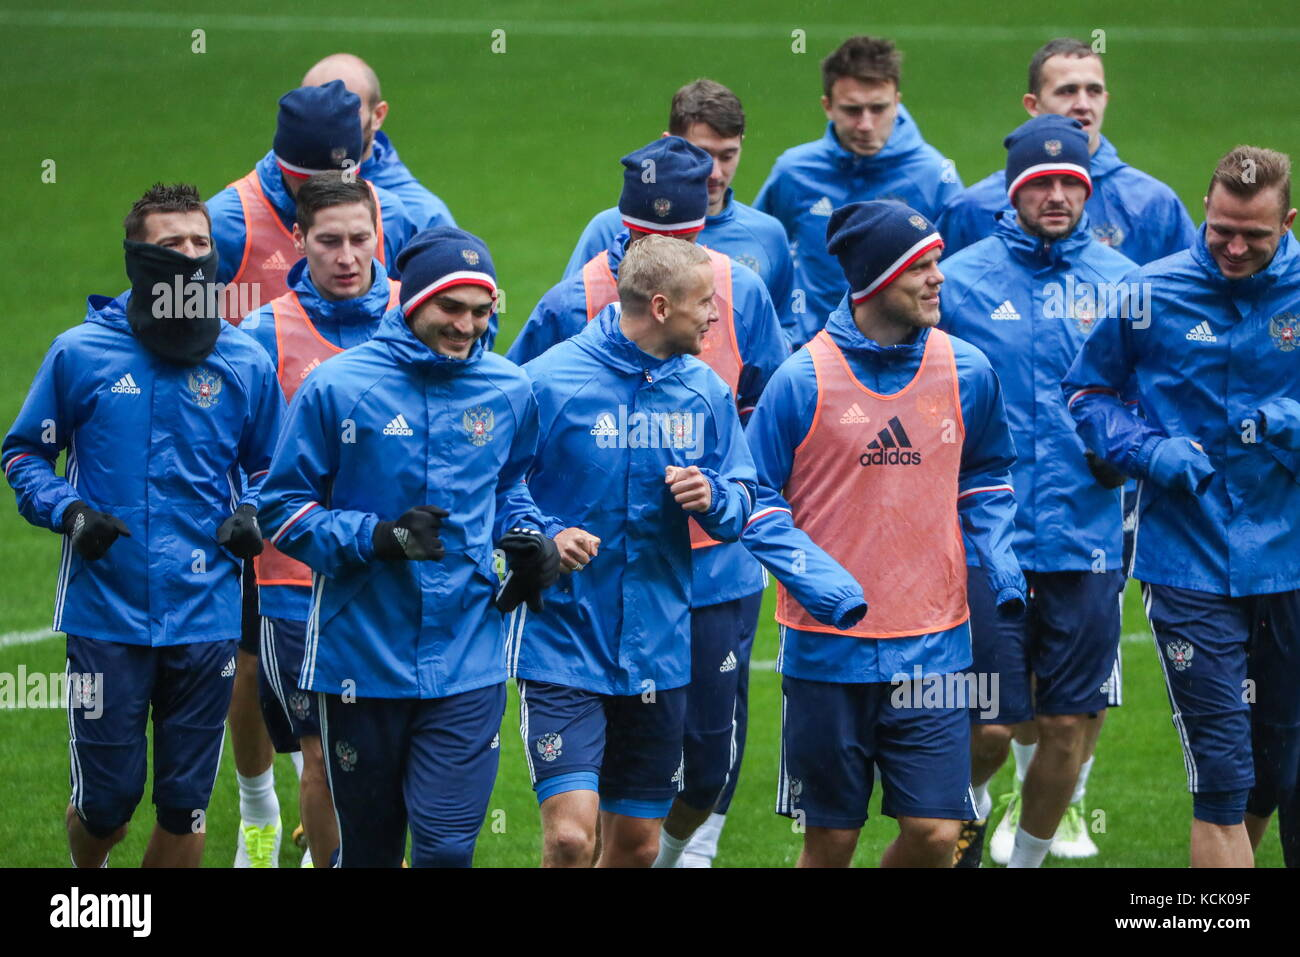 MOSCOW, RUSSIA - OCTOBER 6, 2017: Members of the Russian men's national football team during a training session - Stock Image